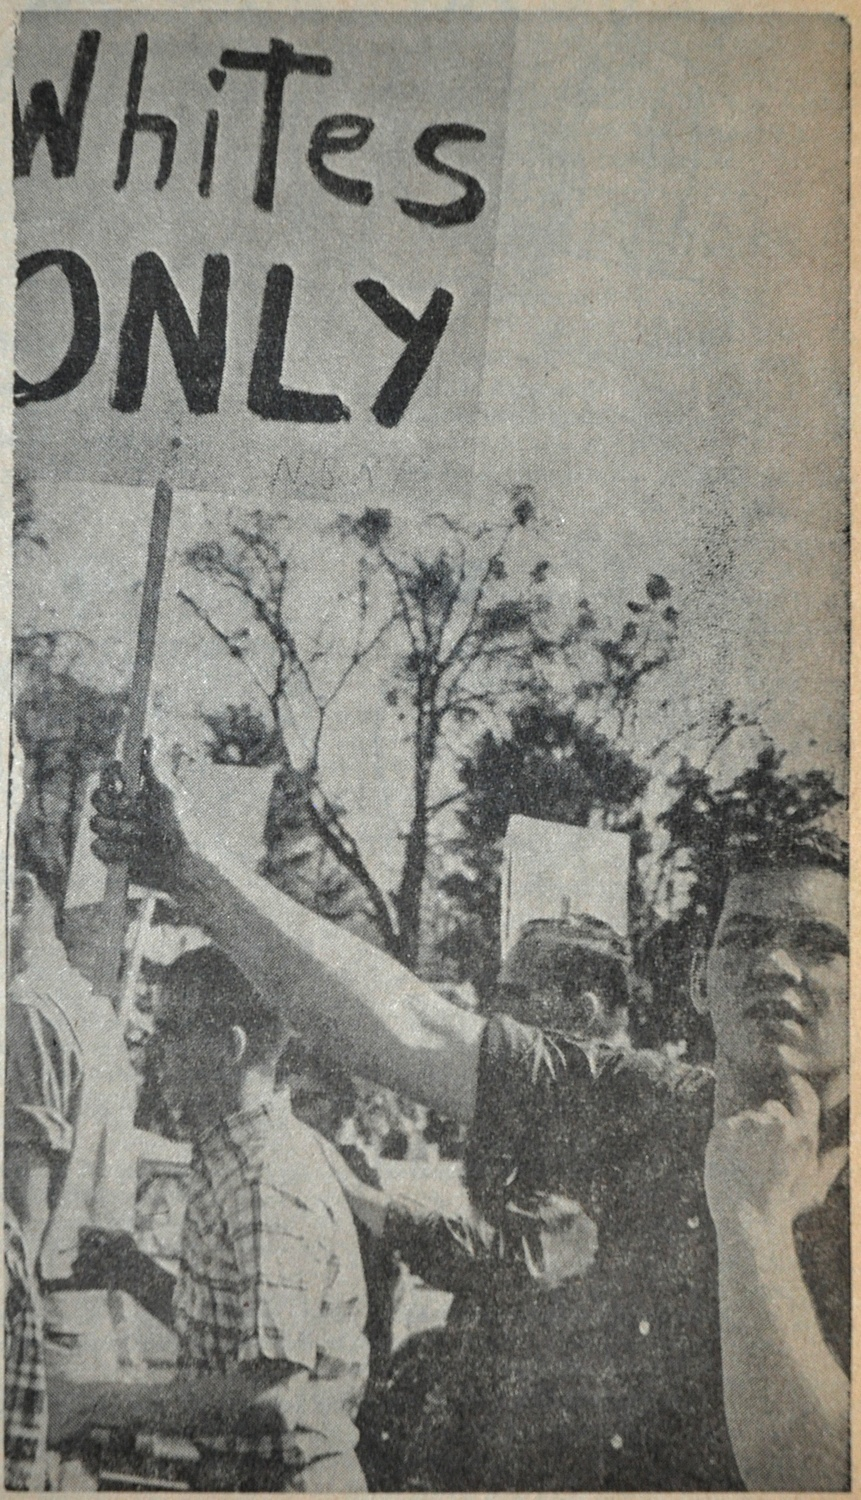 The Crimson printed this image on March 24, 1965.